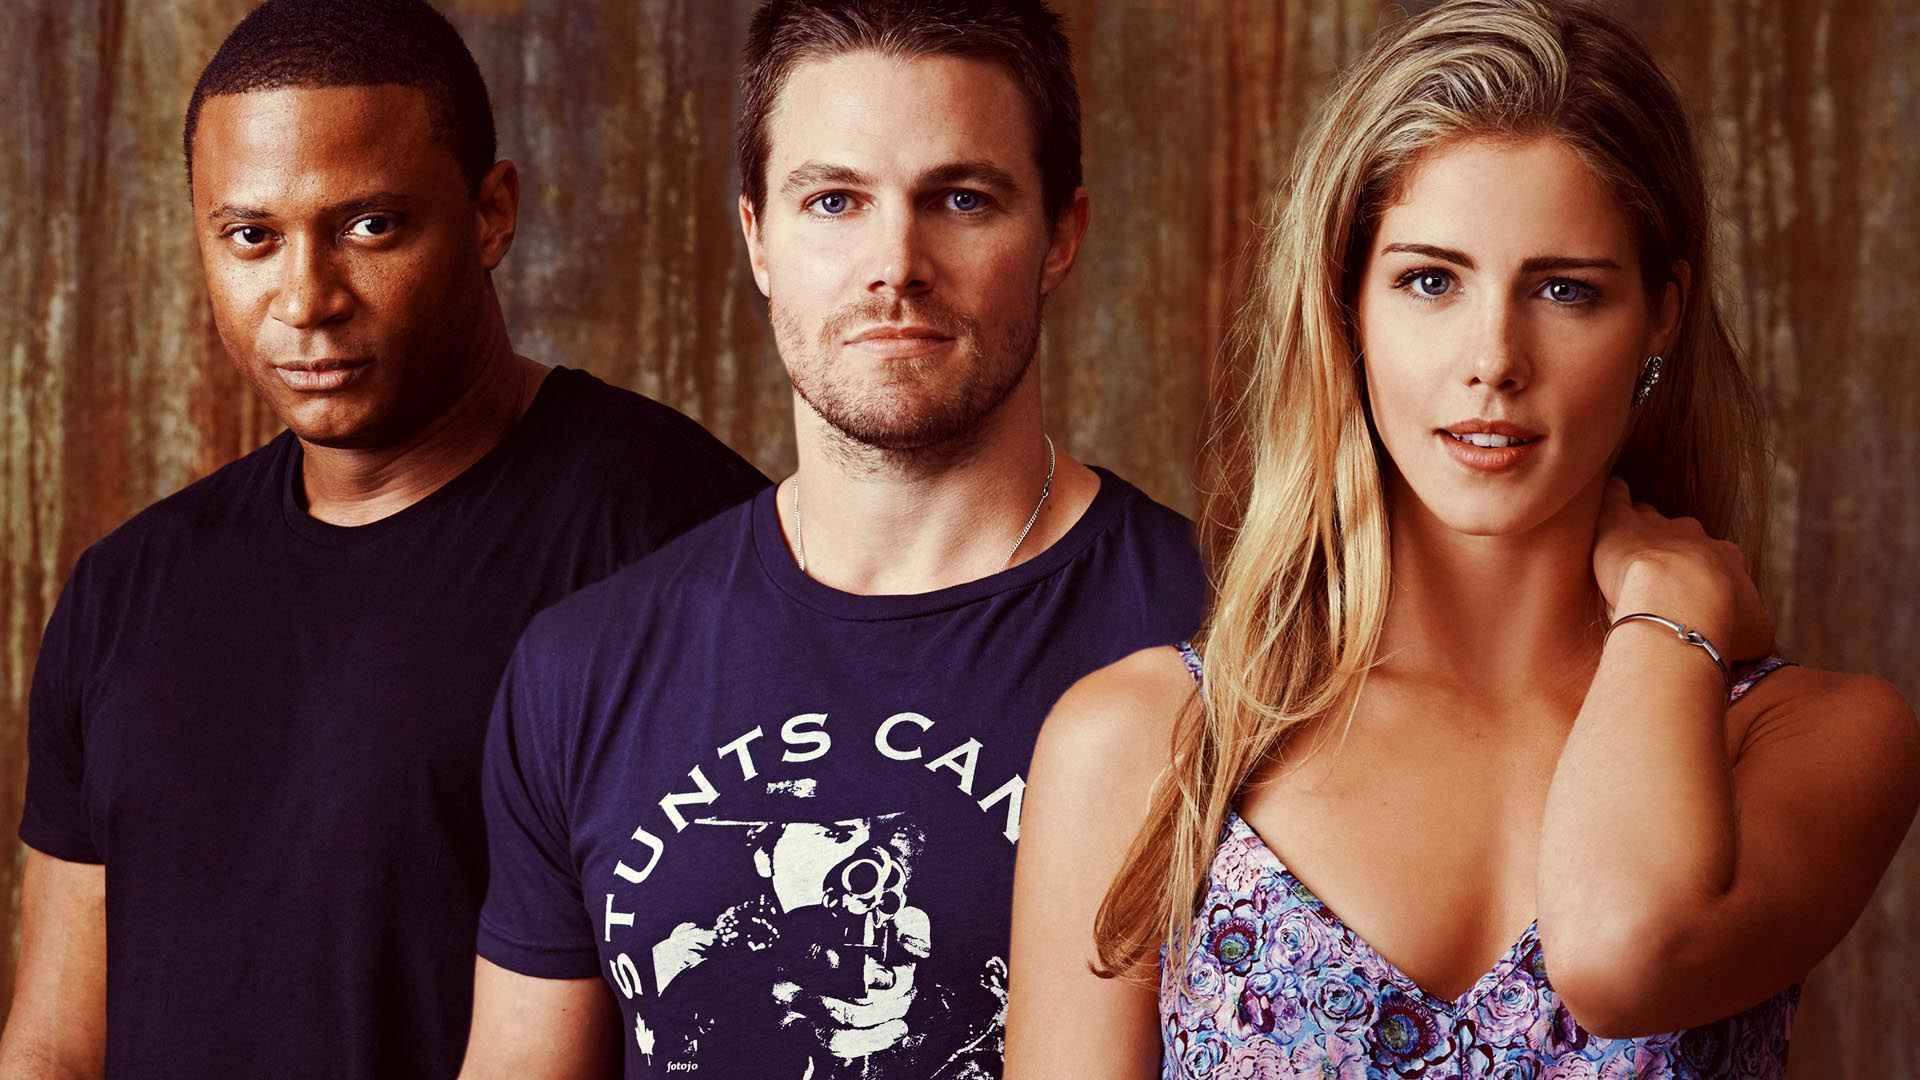 Arrow full hd wallpaper and background image 1920x1080 for Bett 300x300